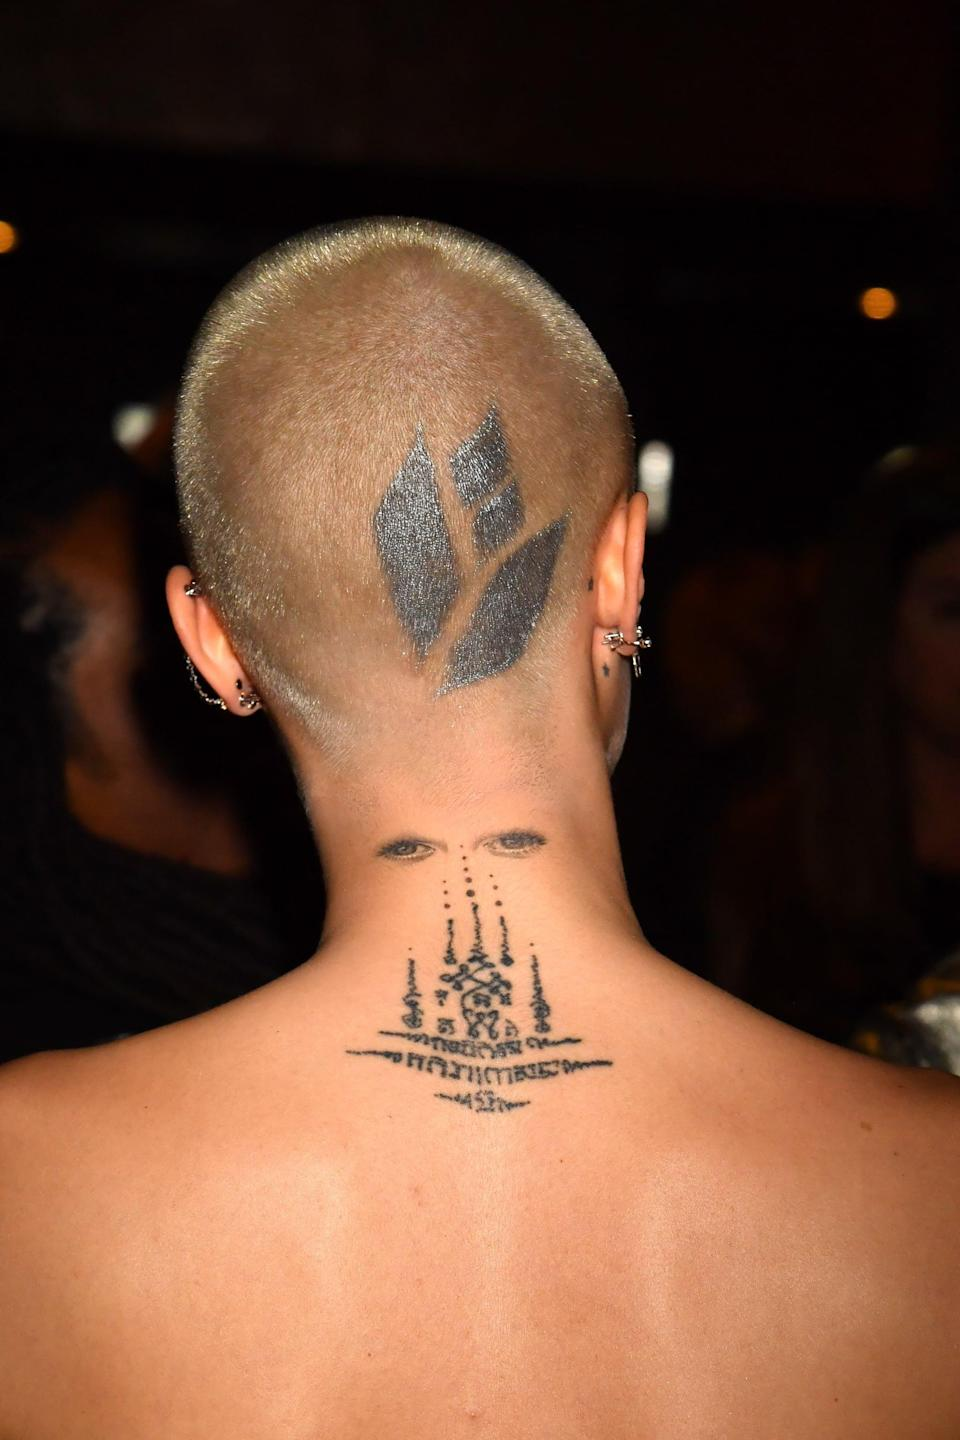 <p>The tattoo on the back of Delevingne's neck is a Yantra tattoo. These kinds of tattoos are popular in Thailand and Southeast Asia, and they consist of sacred geometrical designs that are often thought to bring good luck.</p> <p>Shortly after getting this tattoo, she added a pair of eyes to go directly above it on her neck. </p>